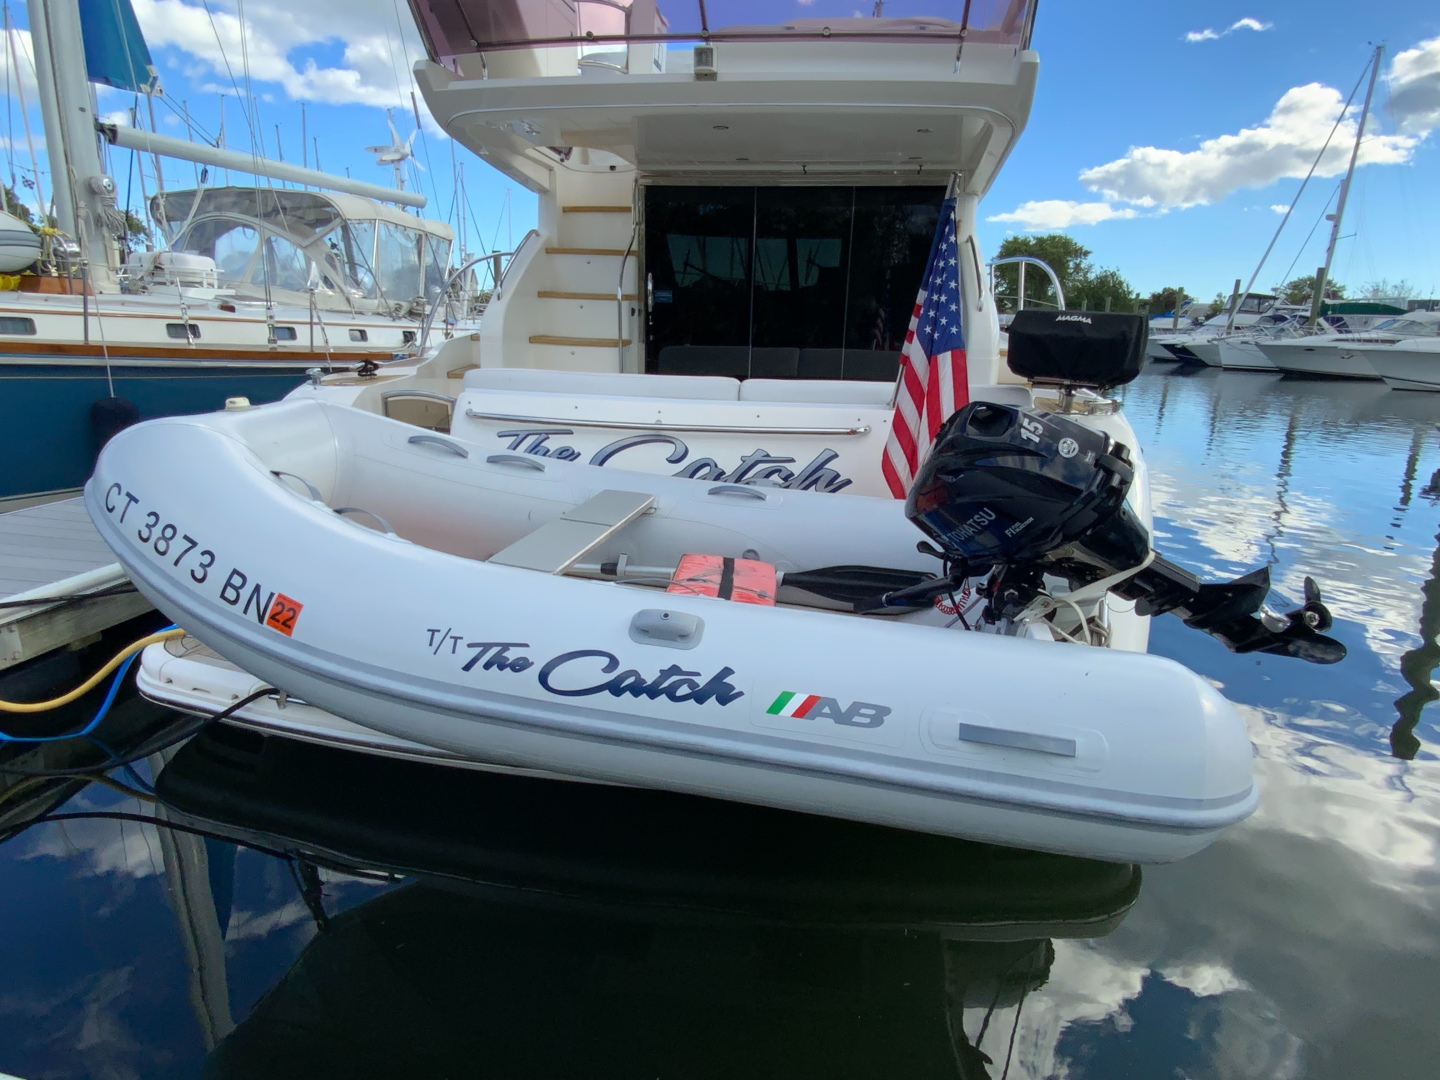 THE CATCH 42ft Princess Yacht For Sale